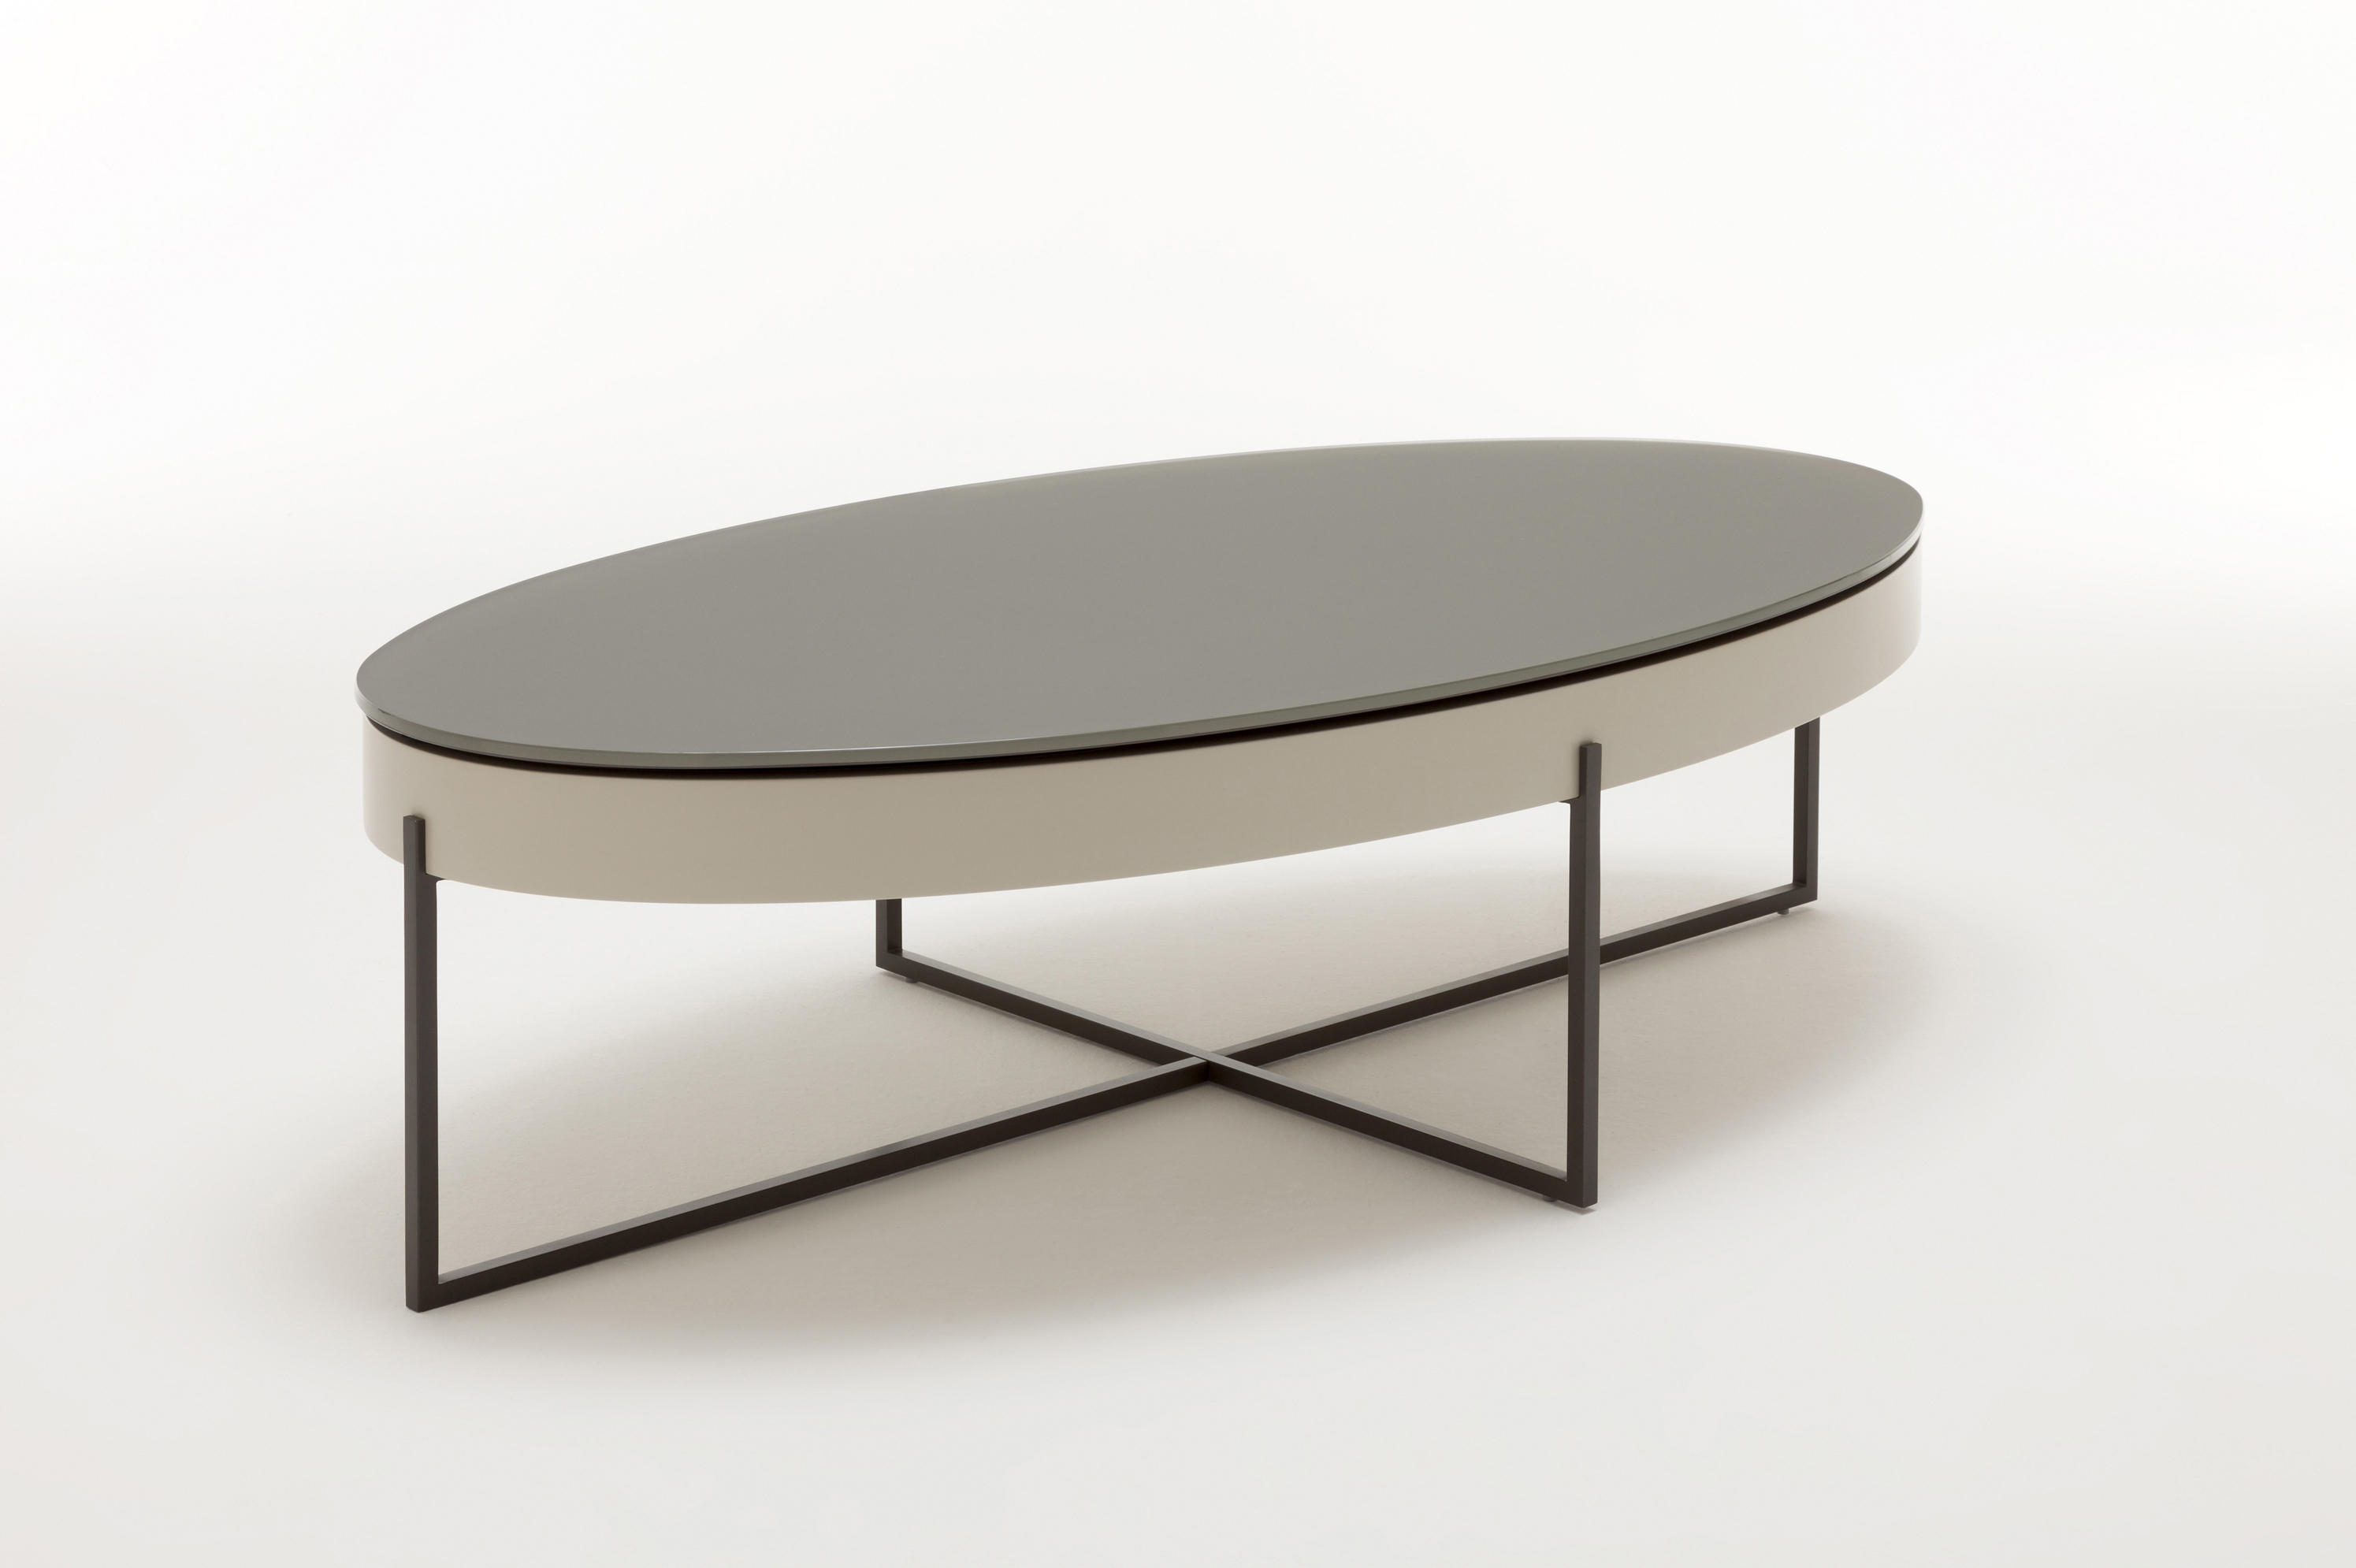 rolf benz 8440 lounge tables from rolf benz architonic. Black Bedroom Furniture Sets. Home Design Ideas